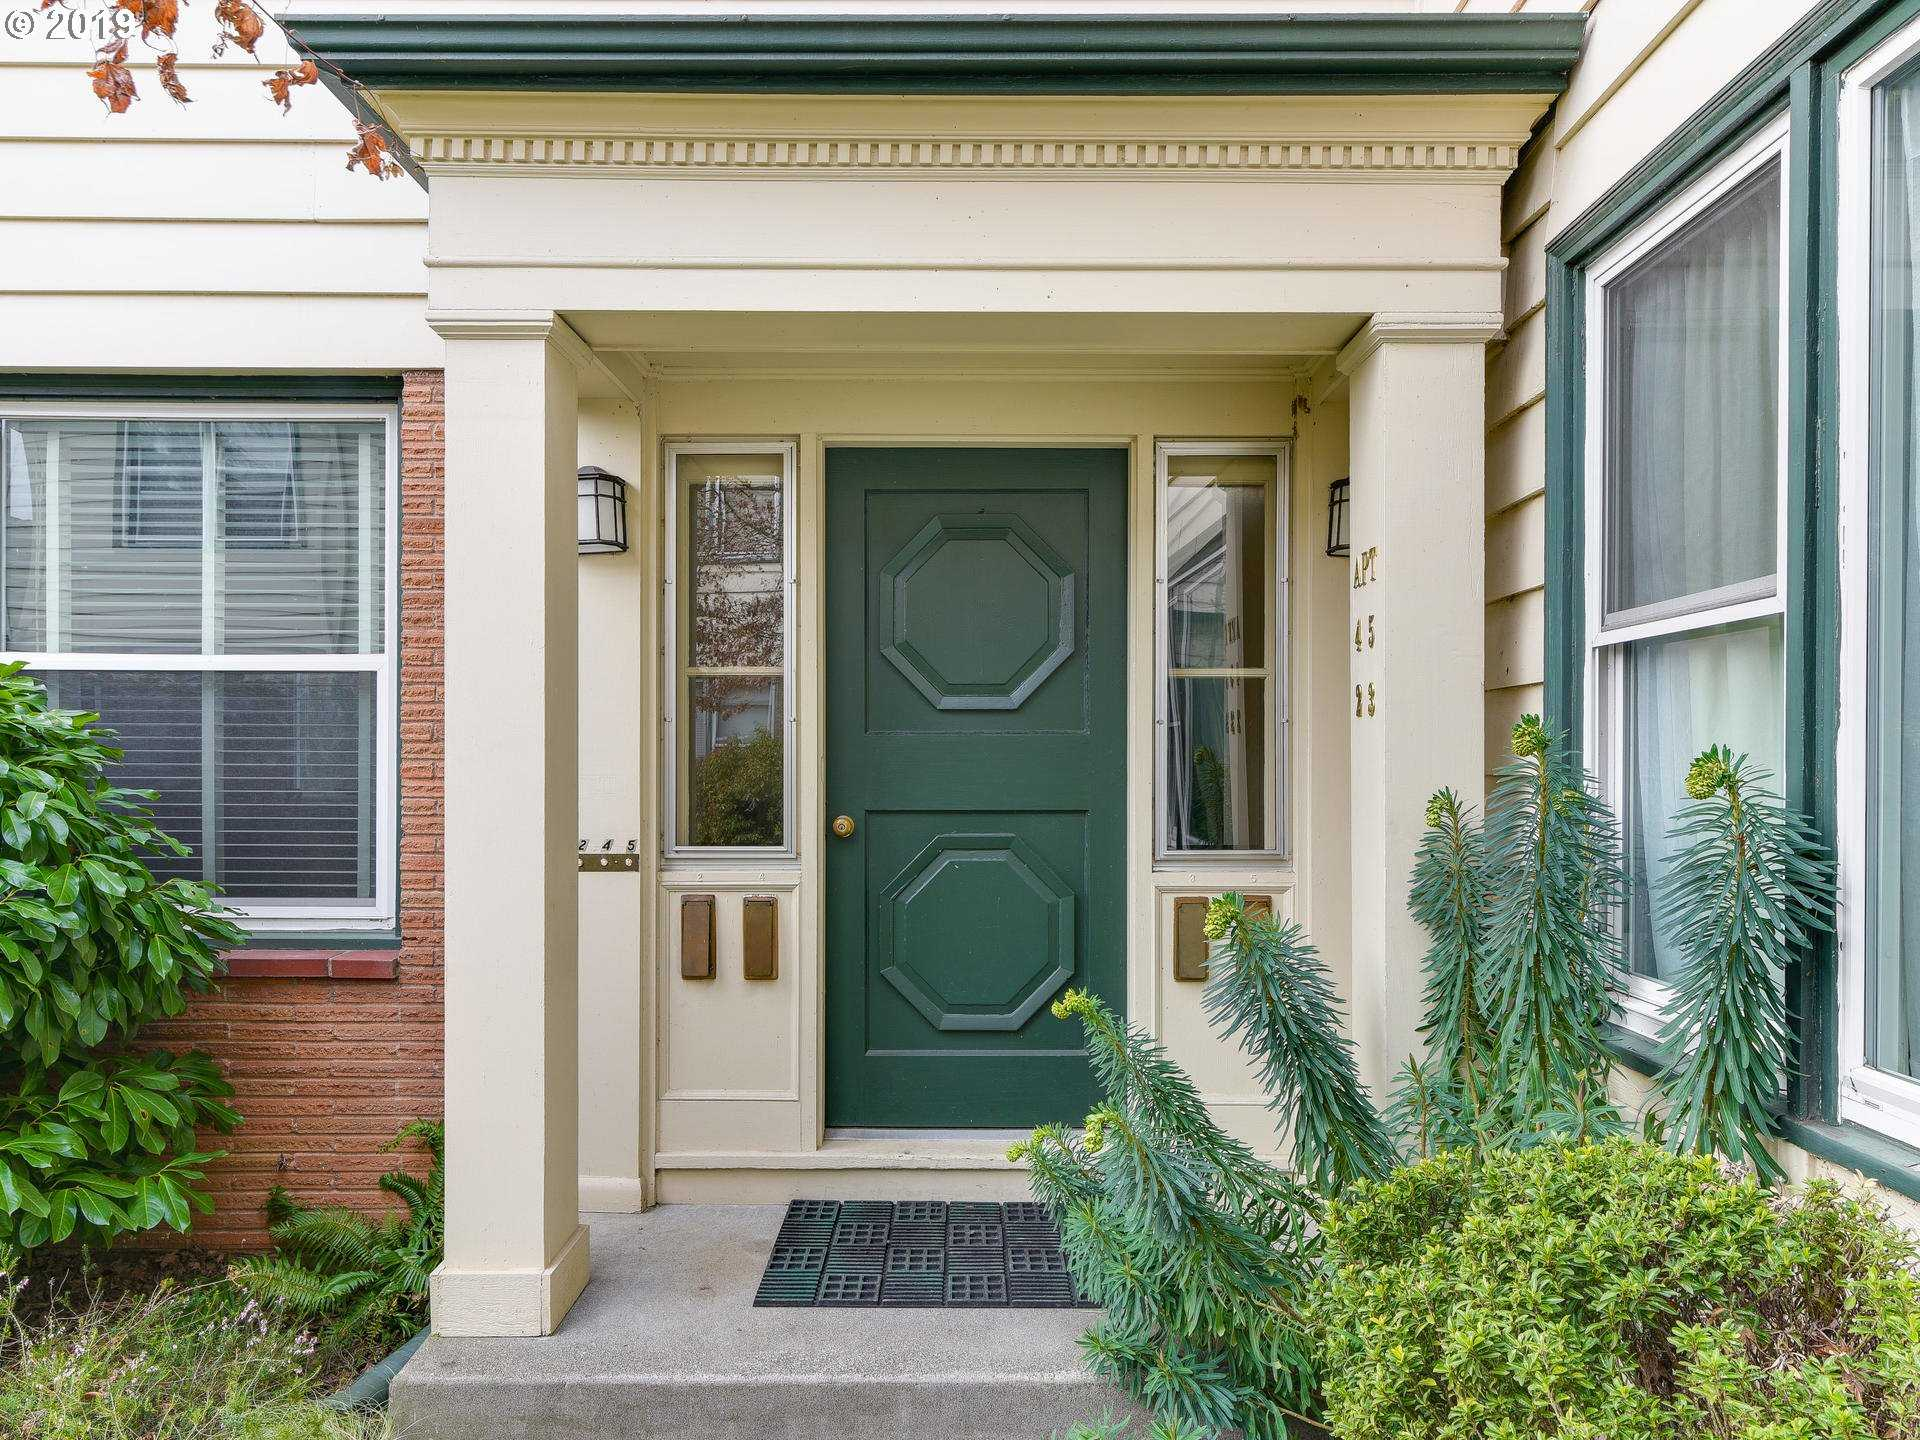 $338,500 - 2Br/1Ba -  for Sale in Sullivans Gulch, Portland